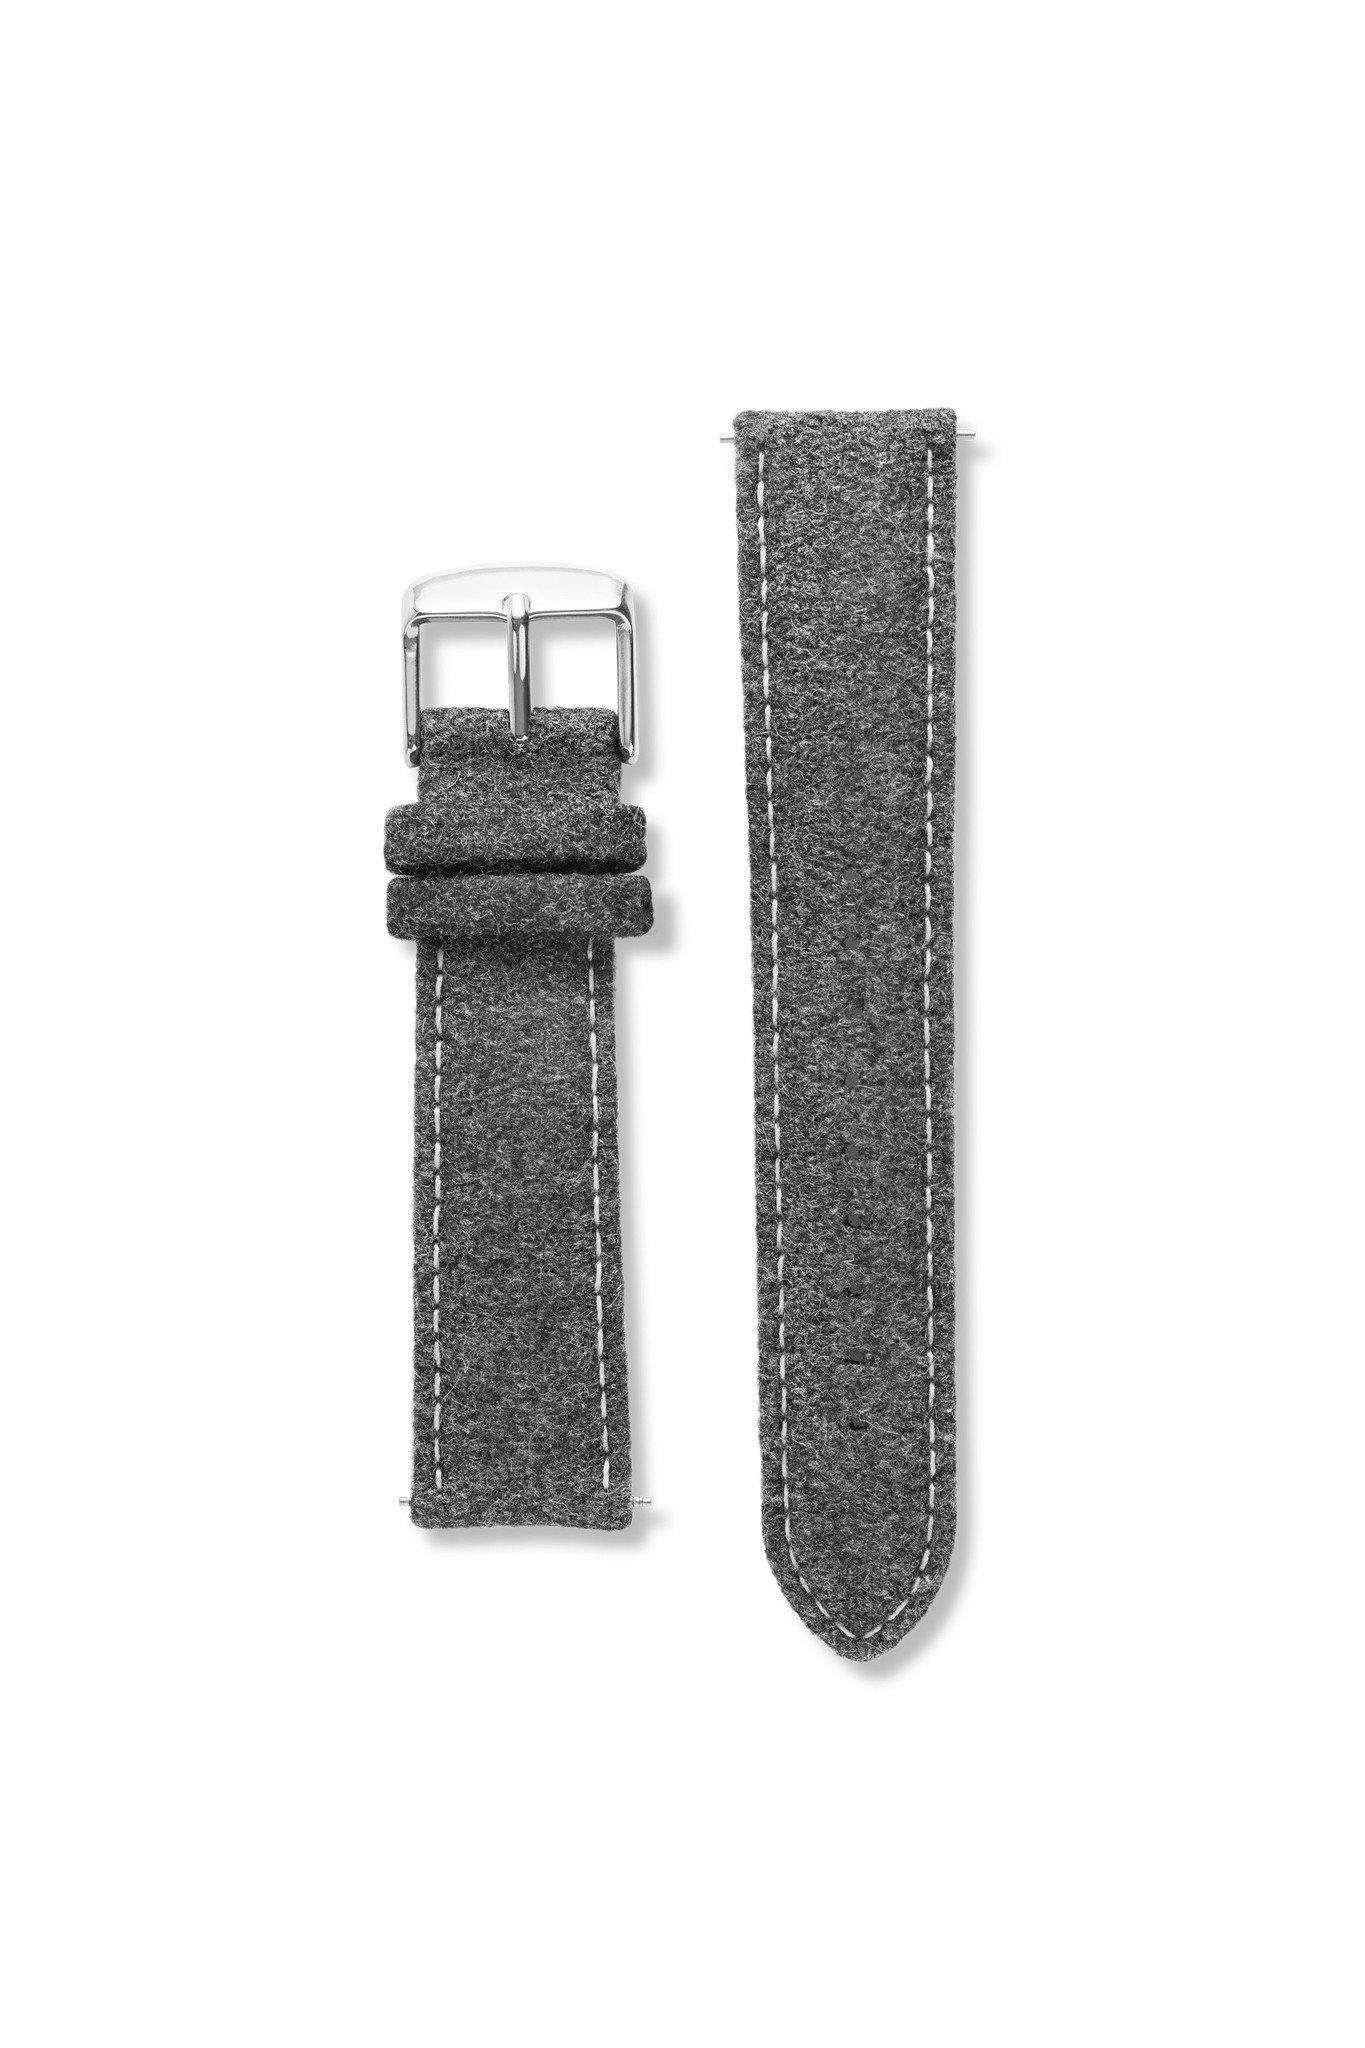 Strap - Tweed Charcoal Strap